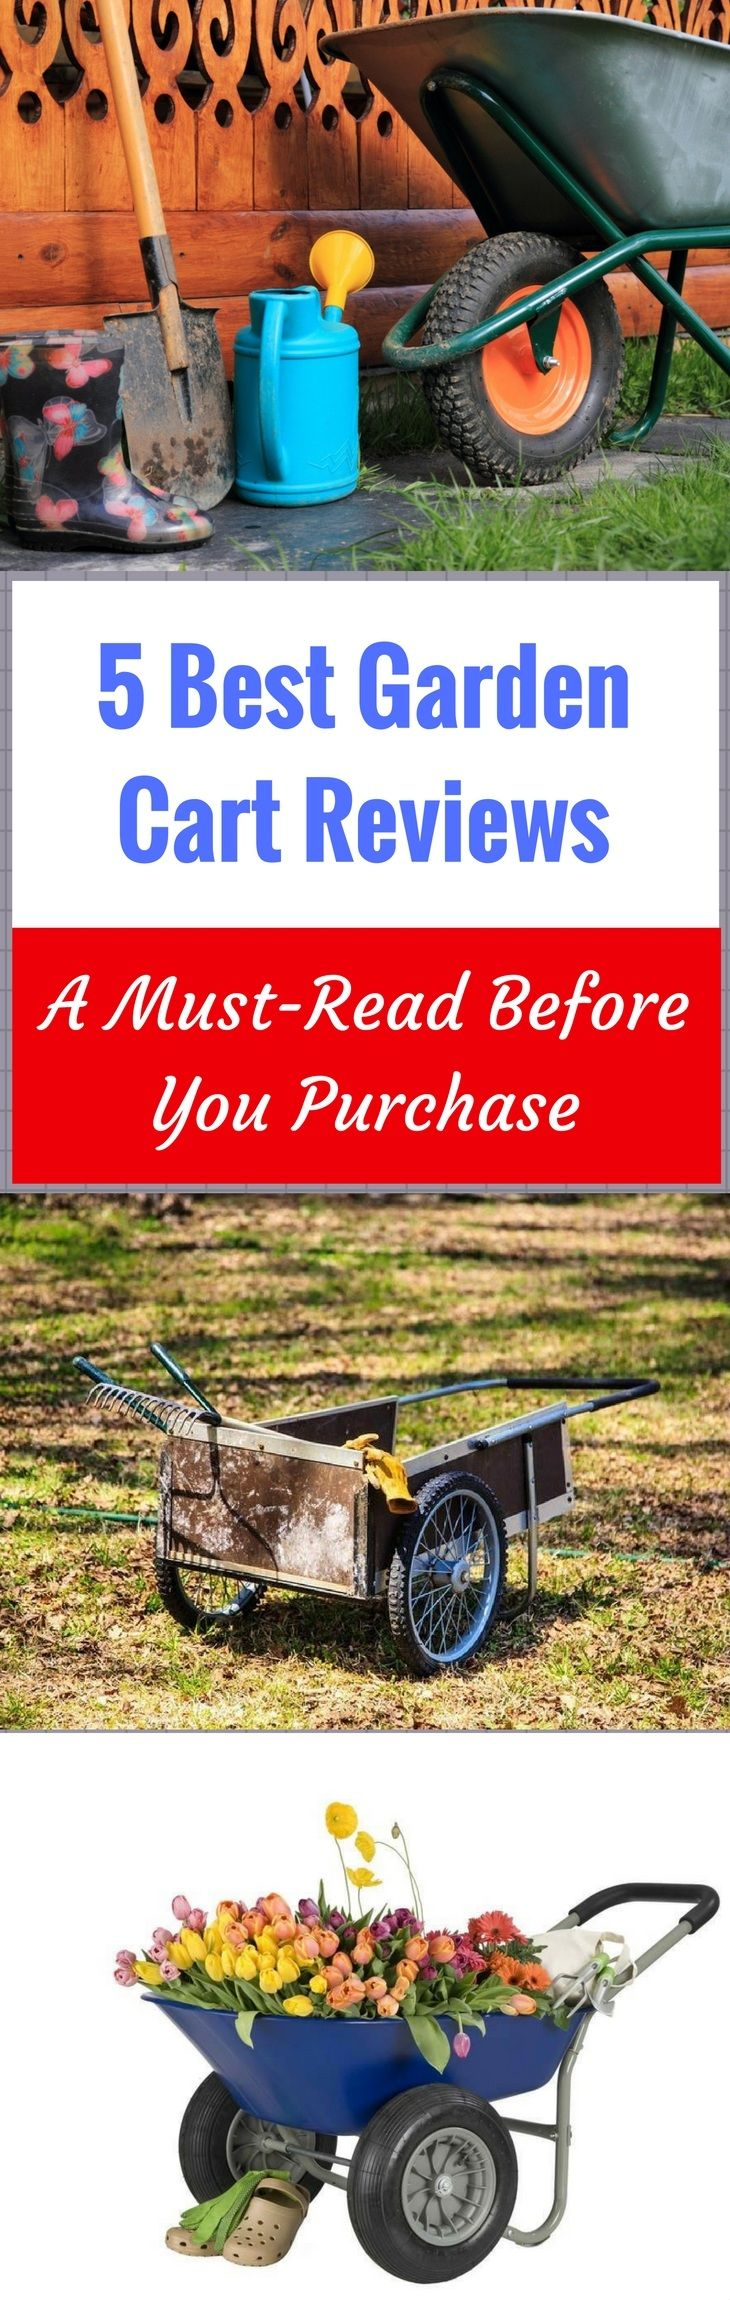 A garden carts is useful for your gardening tasks. Know more about its use, different types, and what garden cart suits you best. Read more at: https://gardenambition.com/best-garden-cart-reviews/